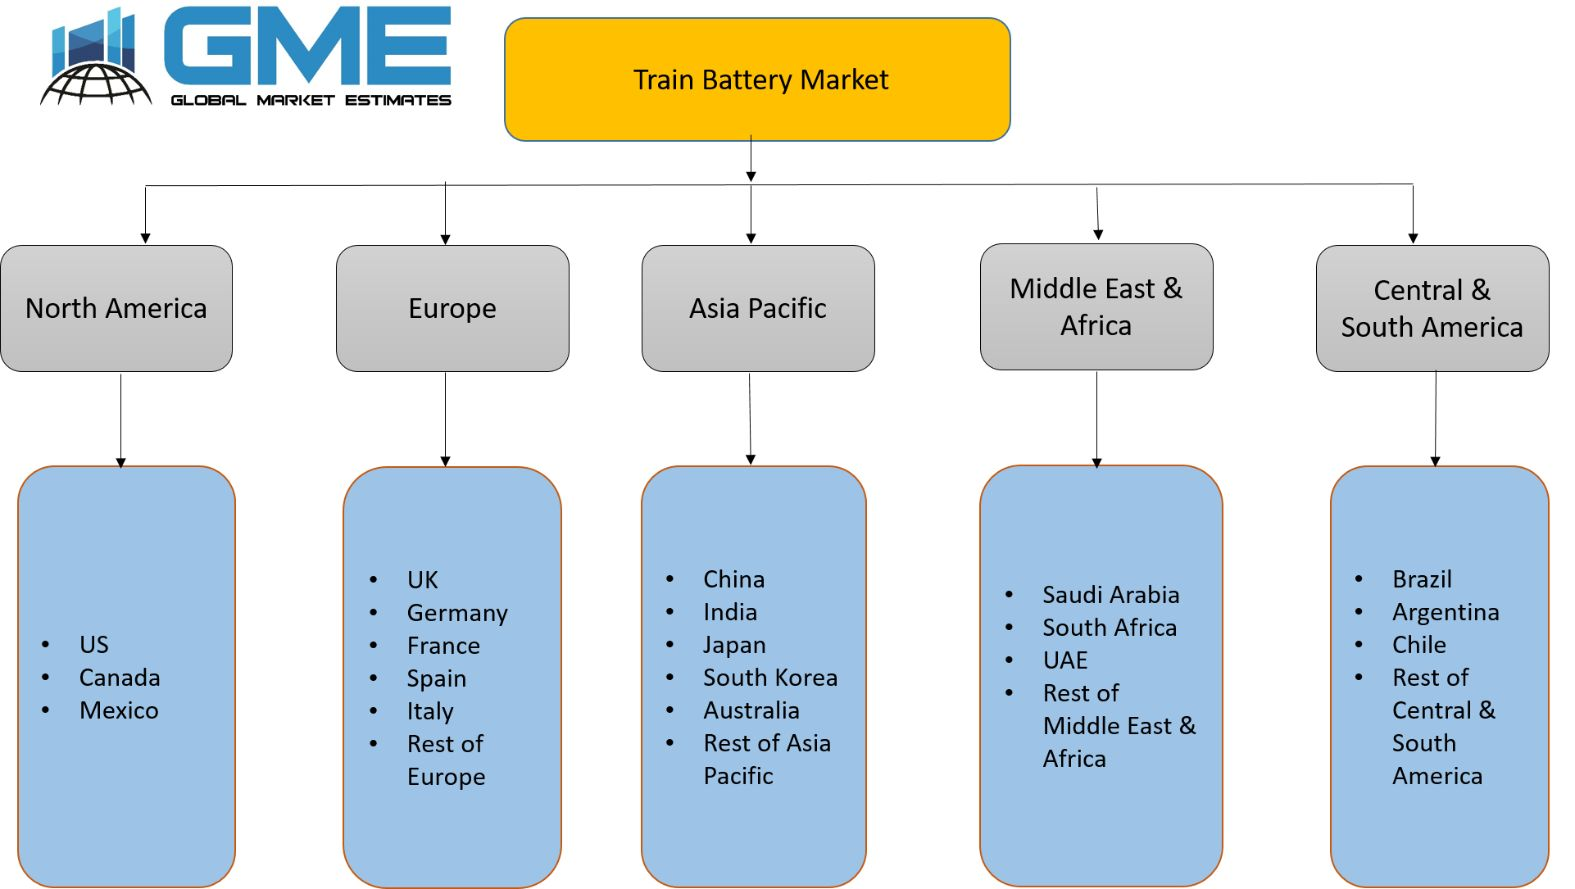 Train Battery Market - Regional Analysis